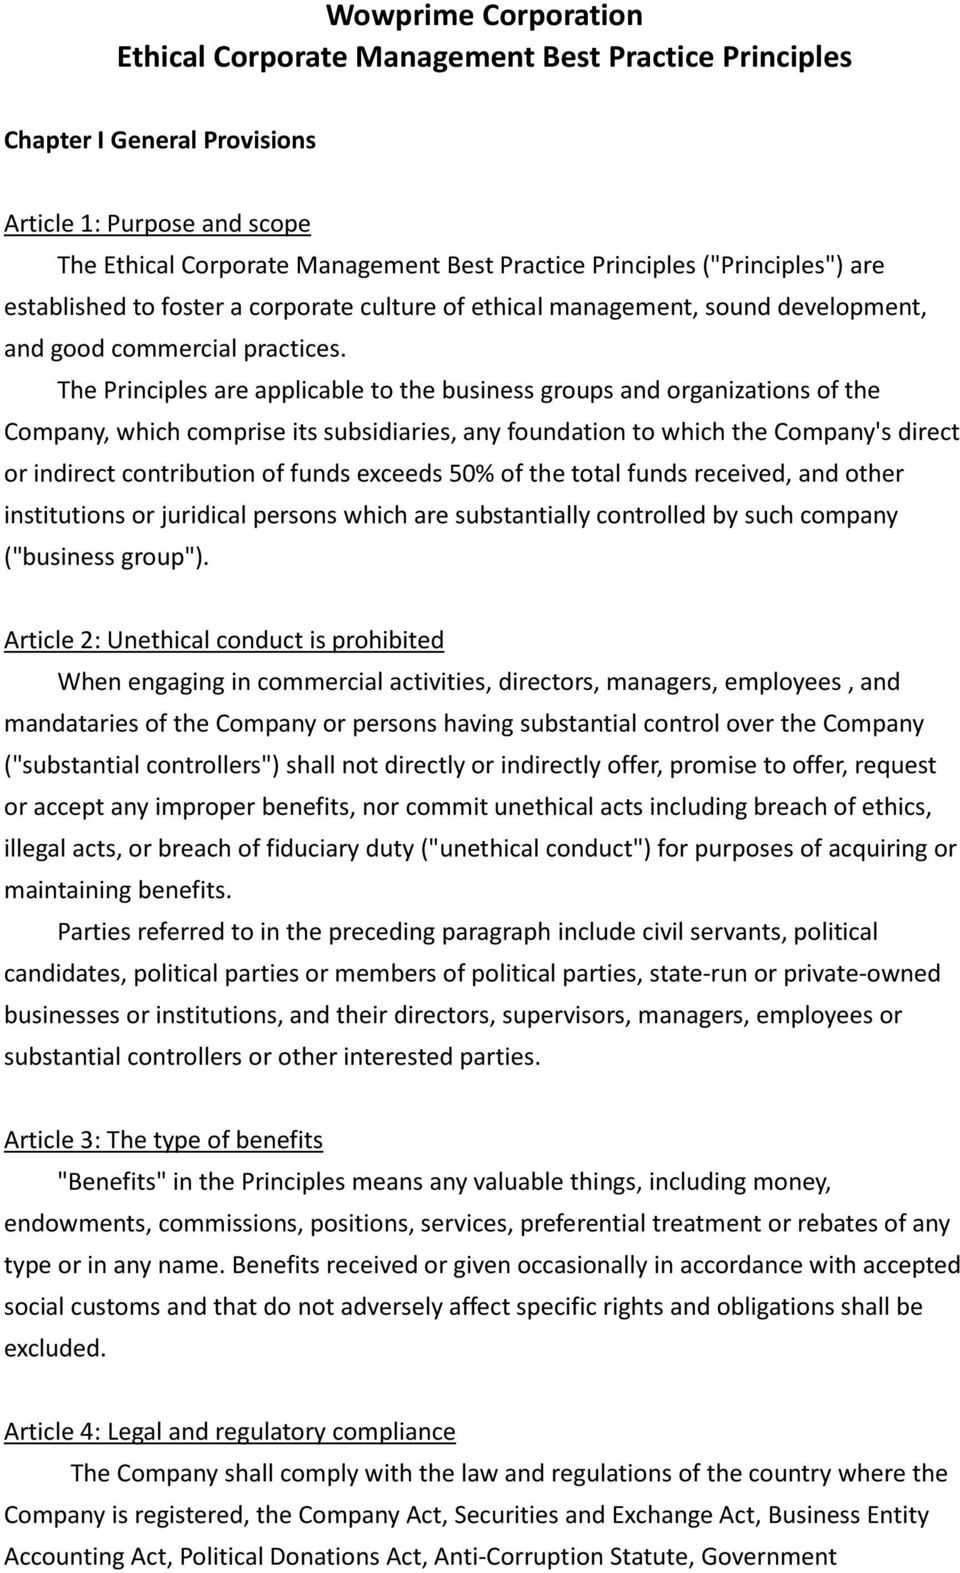 The Principles are applicable to the business groups and organizations of the Company, which comprise its subsidiaries, any foundation to which the Company's direct or indirect contribution of funds